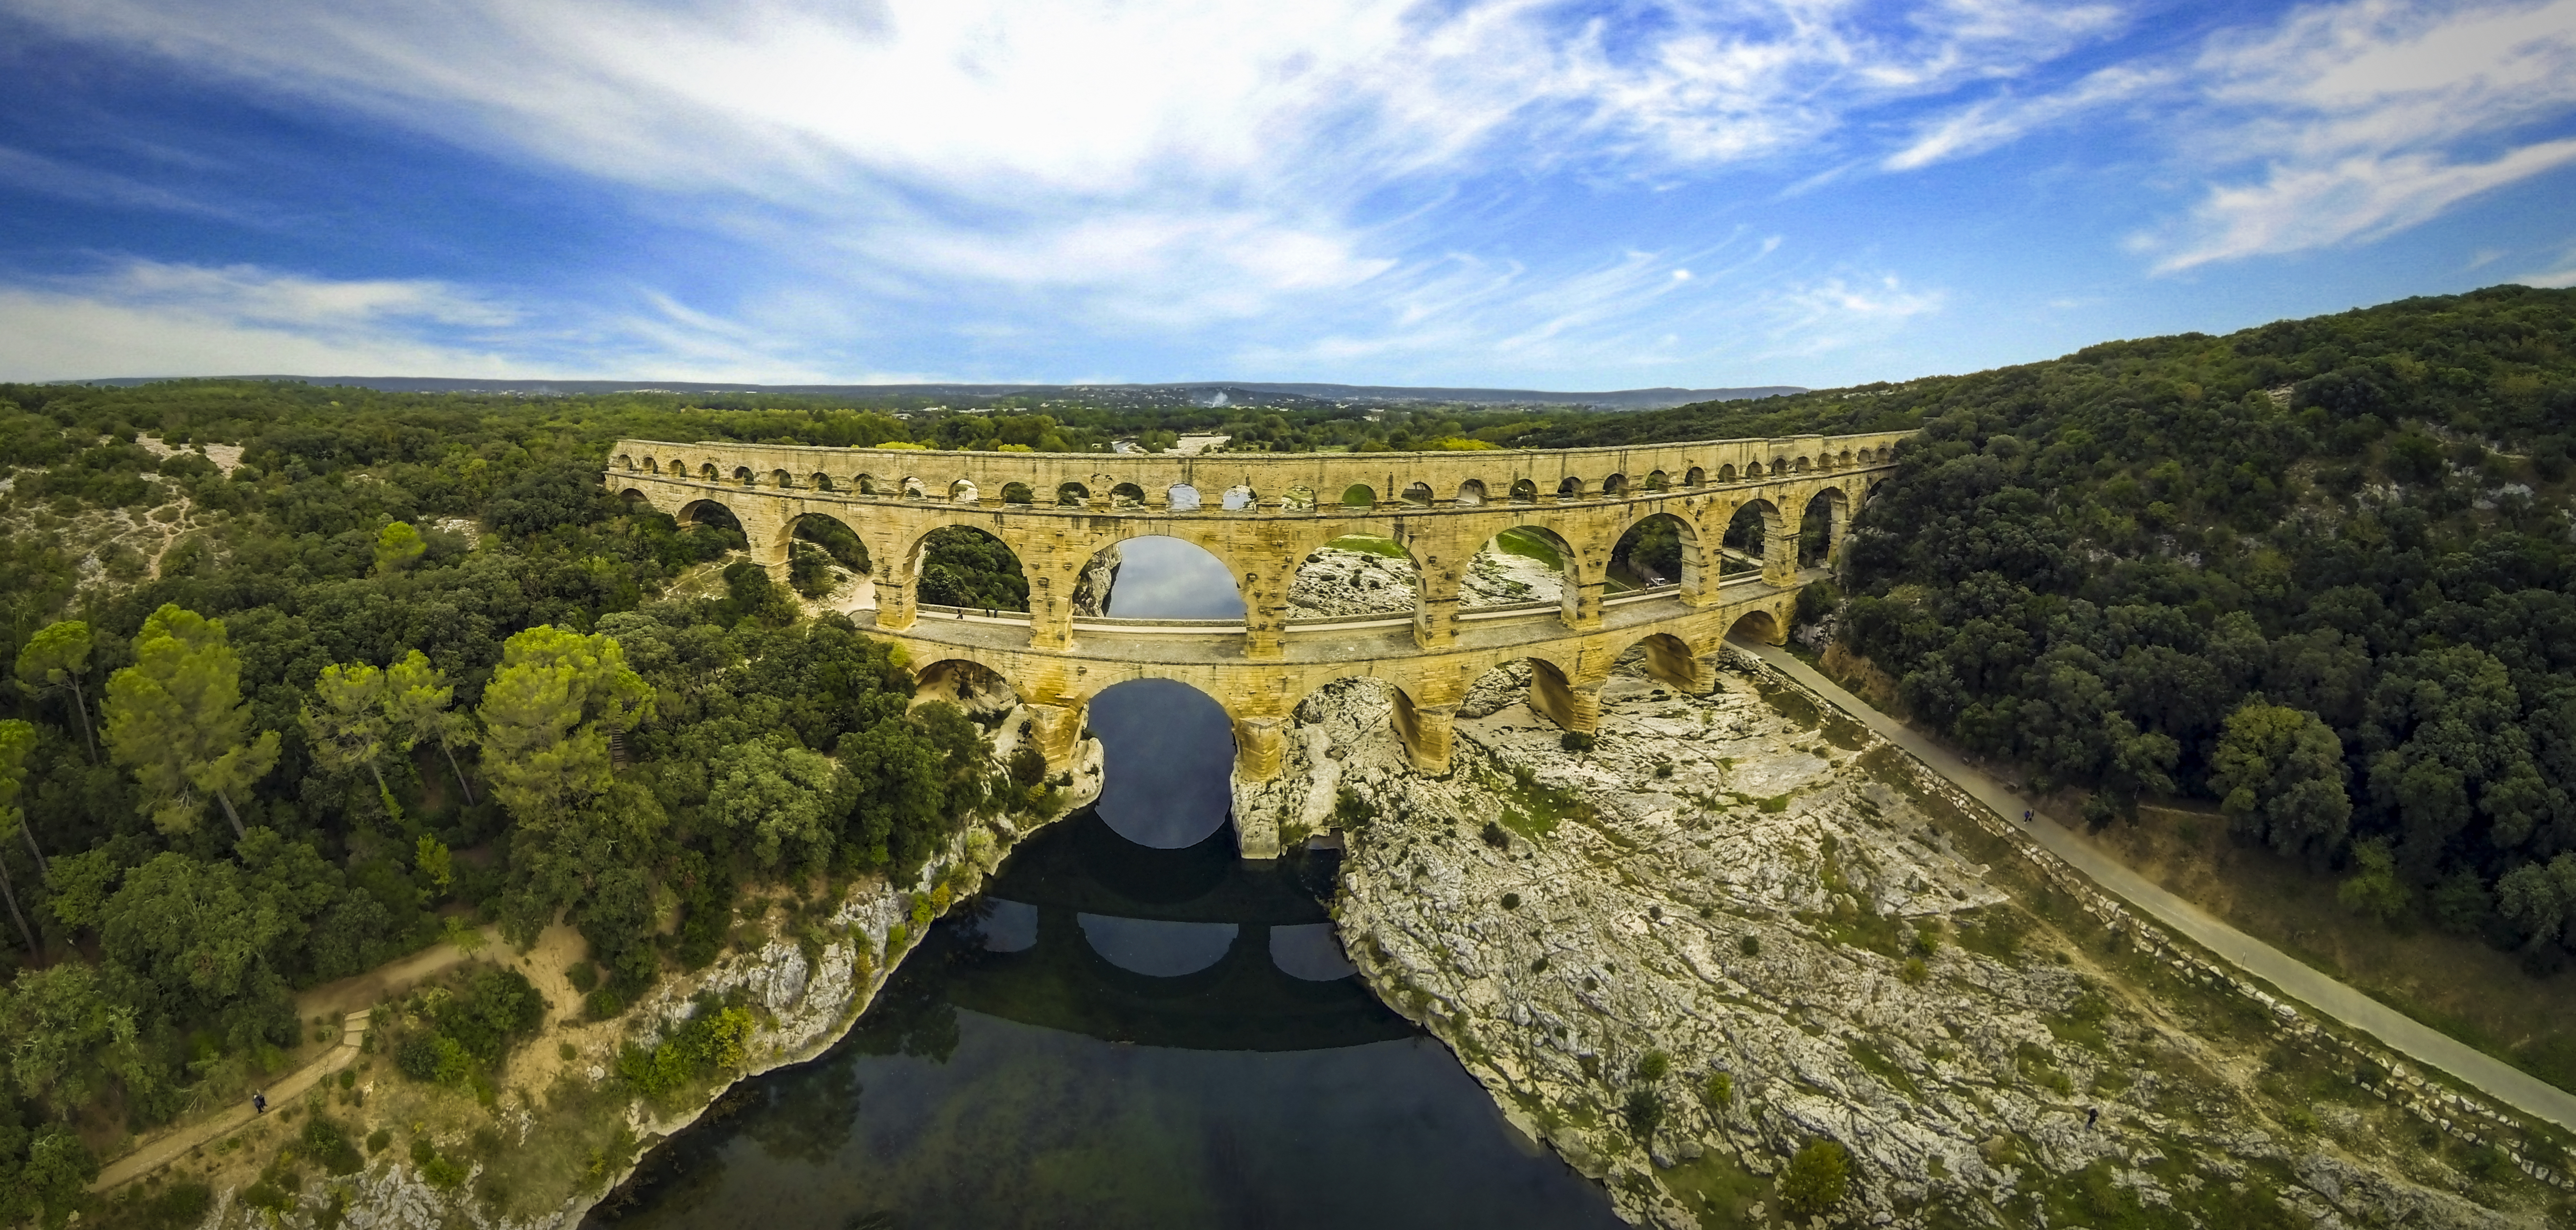 gopro on a drone with Pont Du Gard Provence France on Gopro Hero 6 Black Review in addition Mit Welchen Drohnen Fliegt Ihr Eigentlich likewise Fly It Or Buy It The  plete Guide To Using Camera Drones For Real Estate Marketing additionally Cual Es El Dron Mas Economico in addition Dji Expected To Unveil New Spark Drone On May 24.